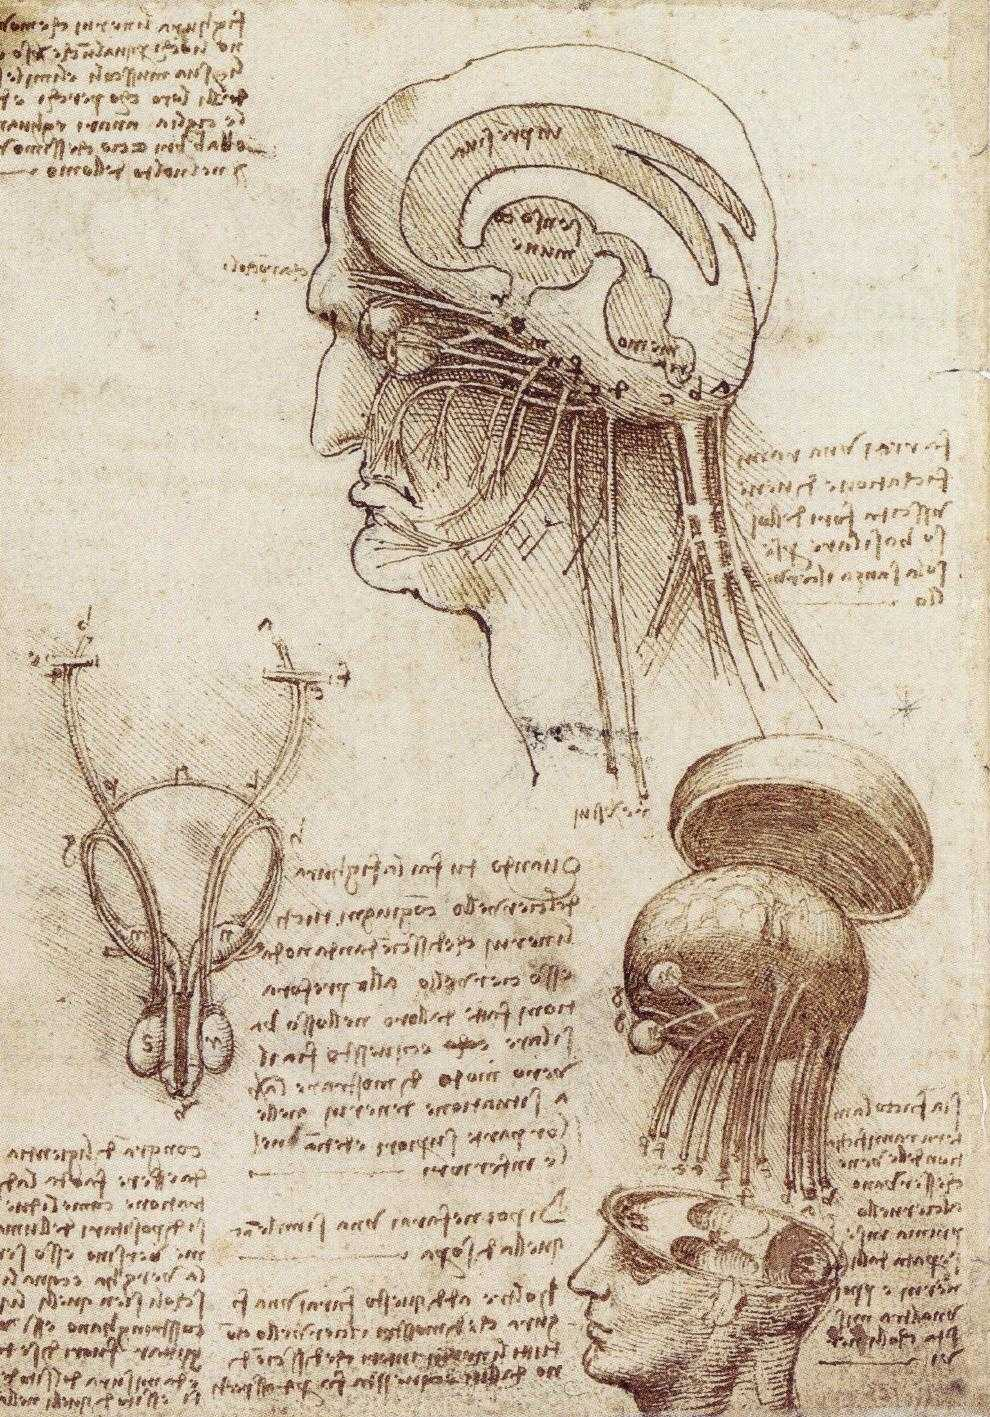 Leonardo's sketch of the human brain